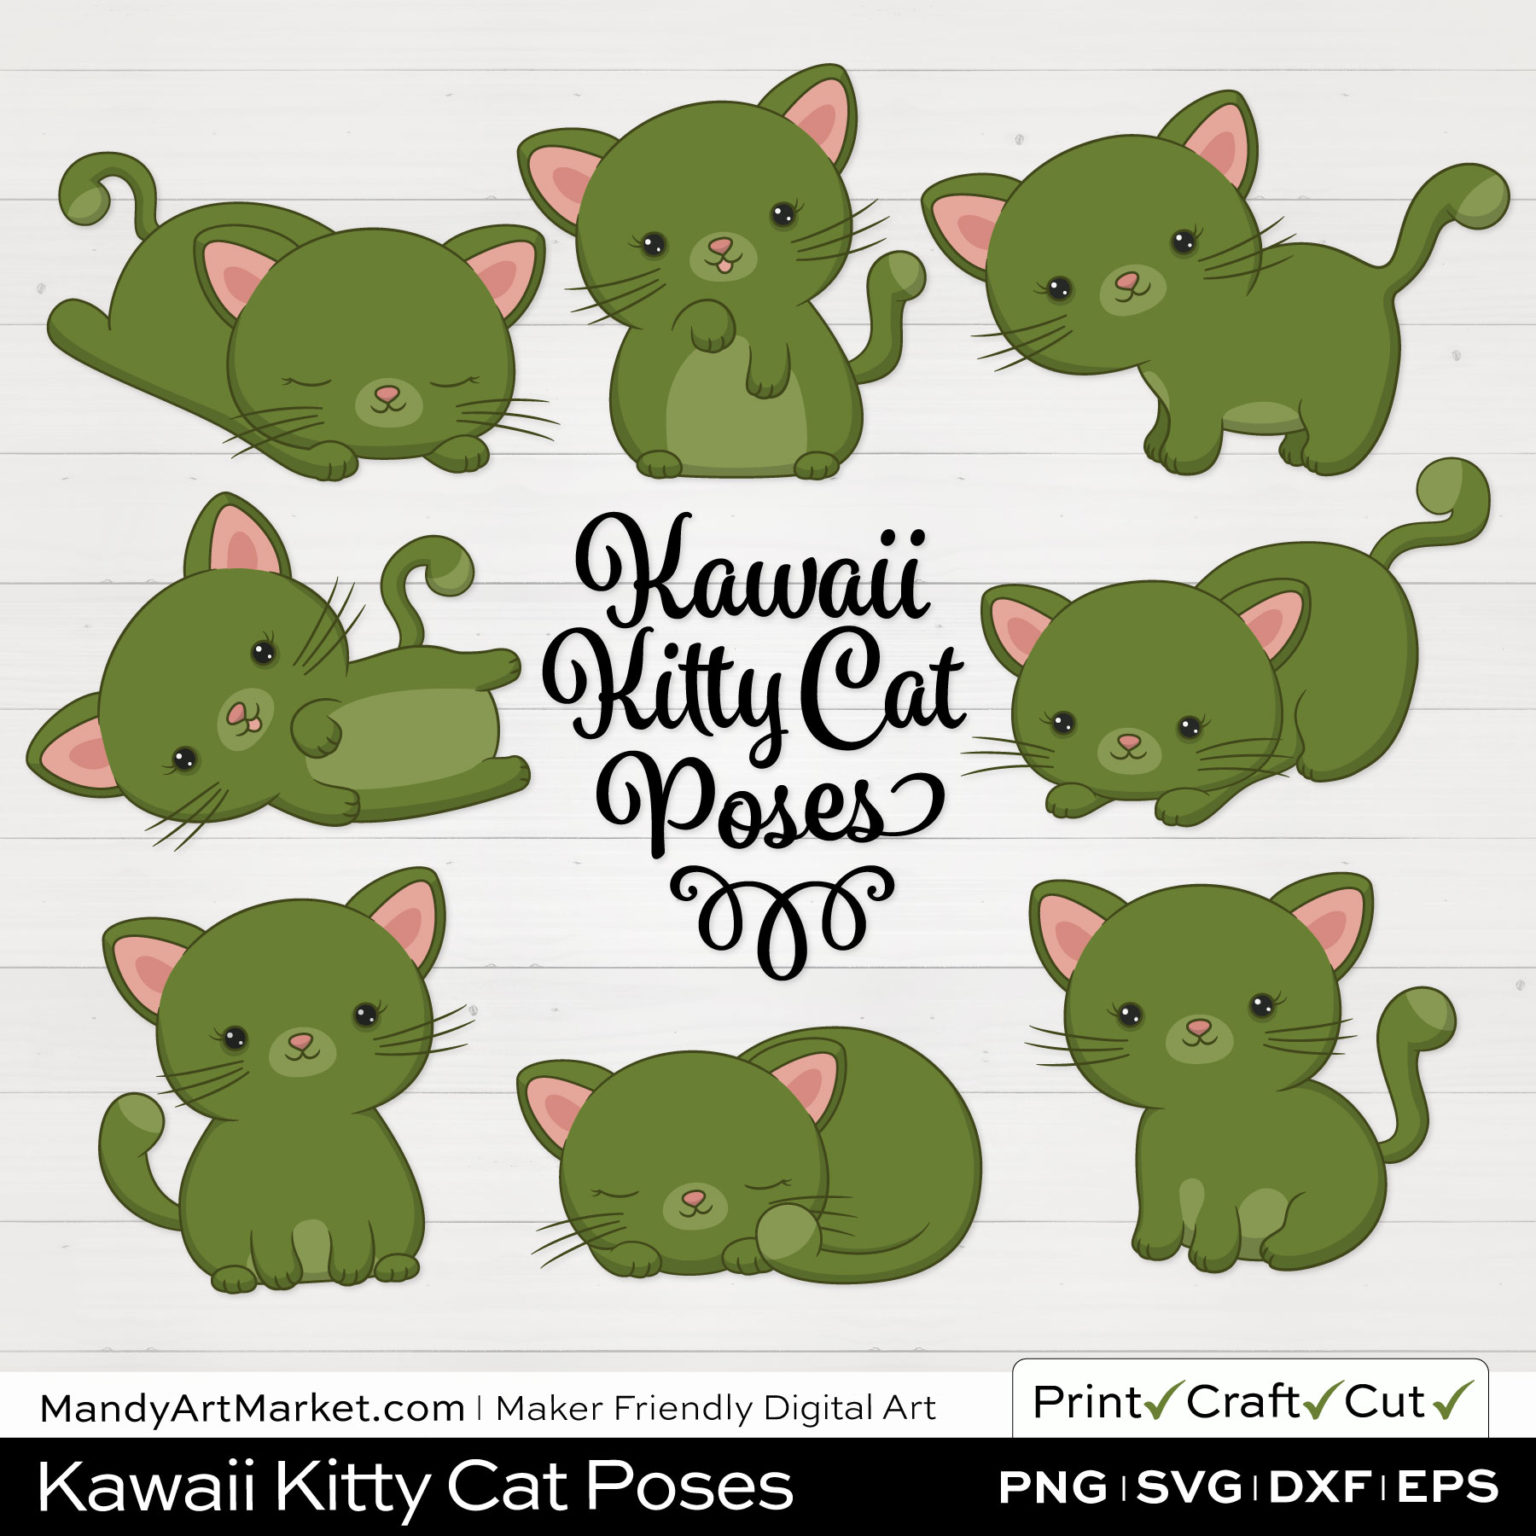 Turtle Green Kawaii Kitty Cat Poses Clipart on White Background